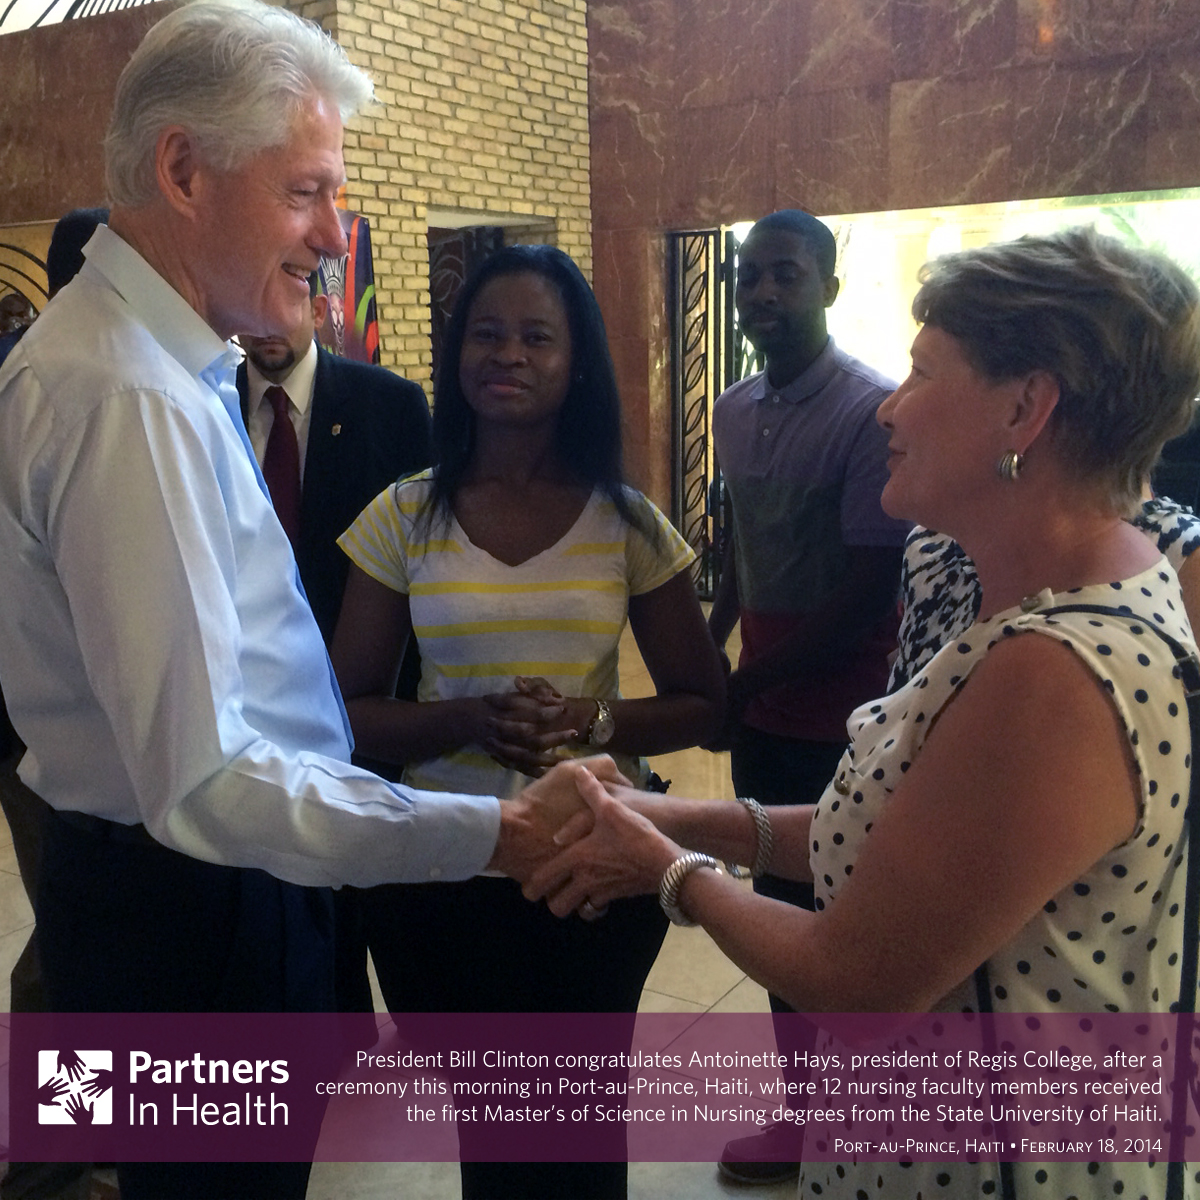 A New Era of Nursing in Haiti